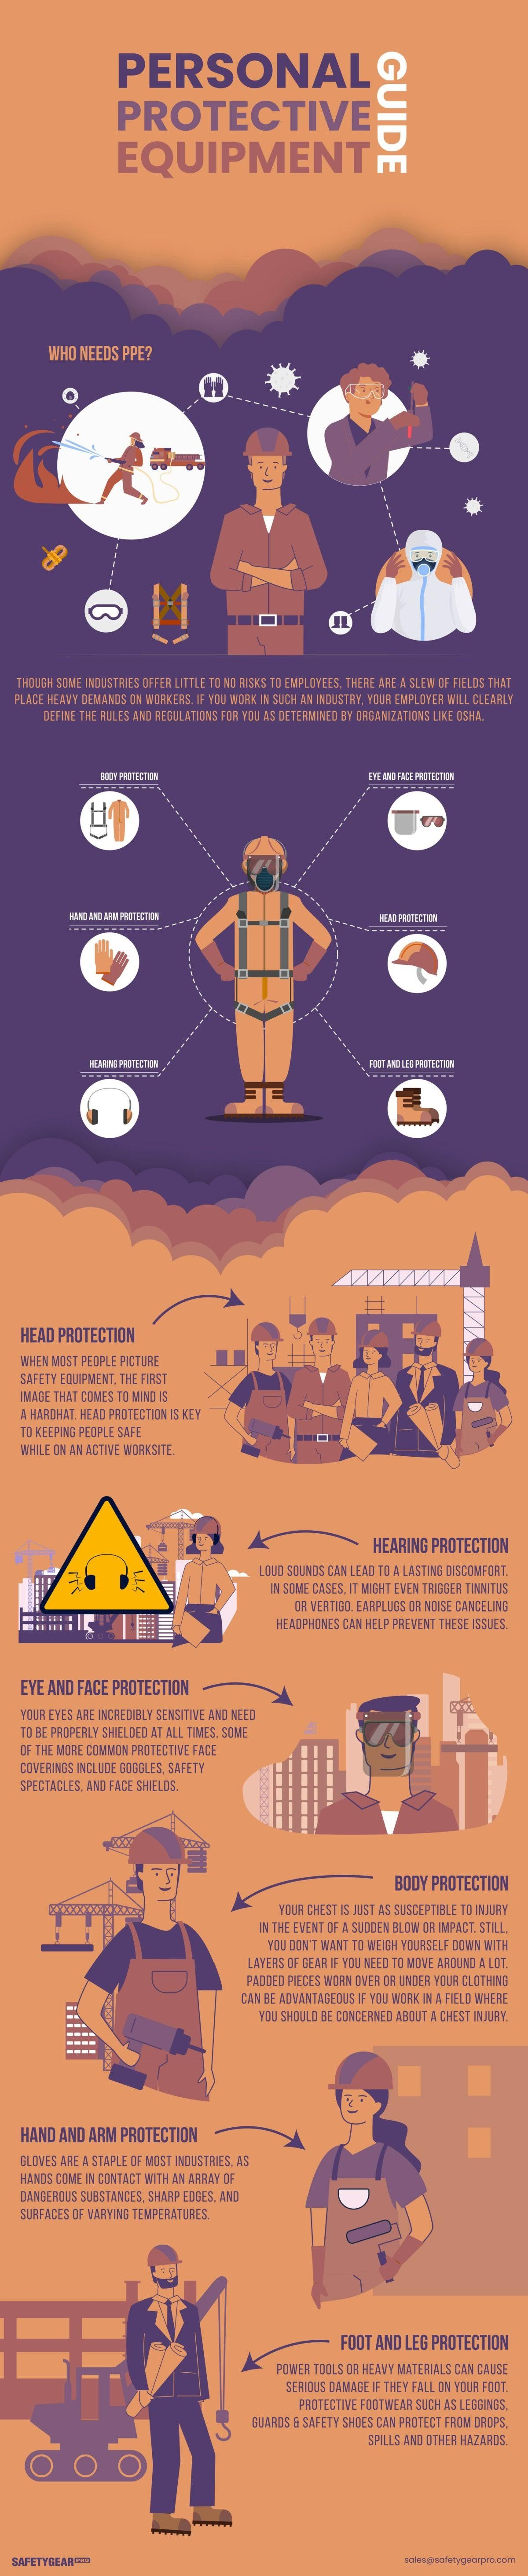 a-quick-guide-to-personal-protection-equipment-infographic